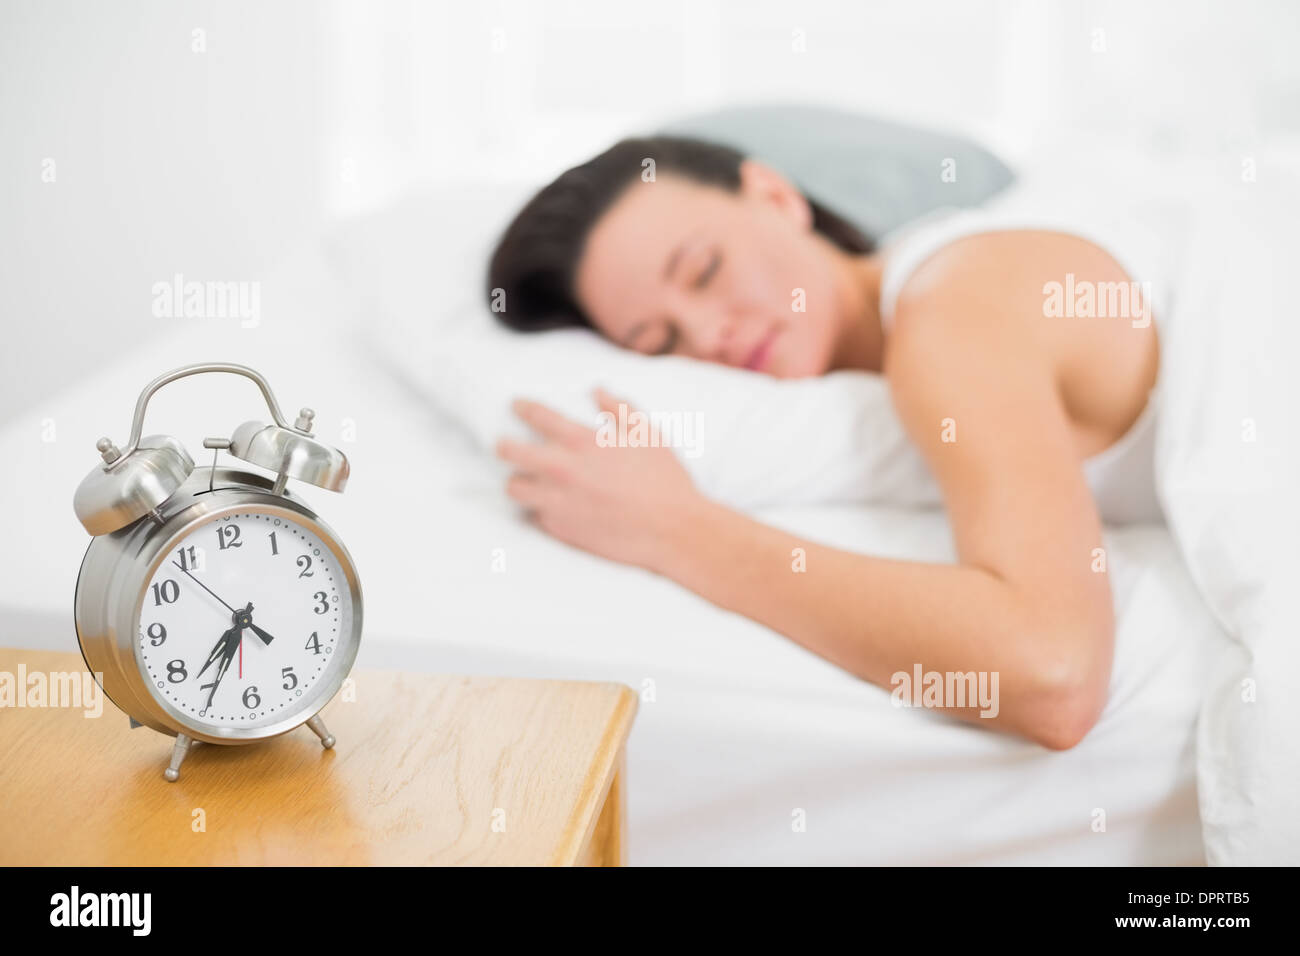 Best Alarm Bedside - blurred-woman-sleeping-in-bed-with-alarm-clock-on-bedside-table-DPRTB5  Image_488322.jpg